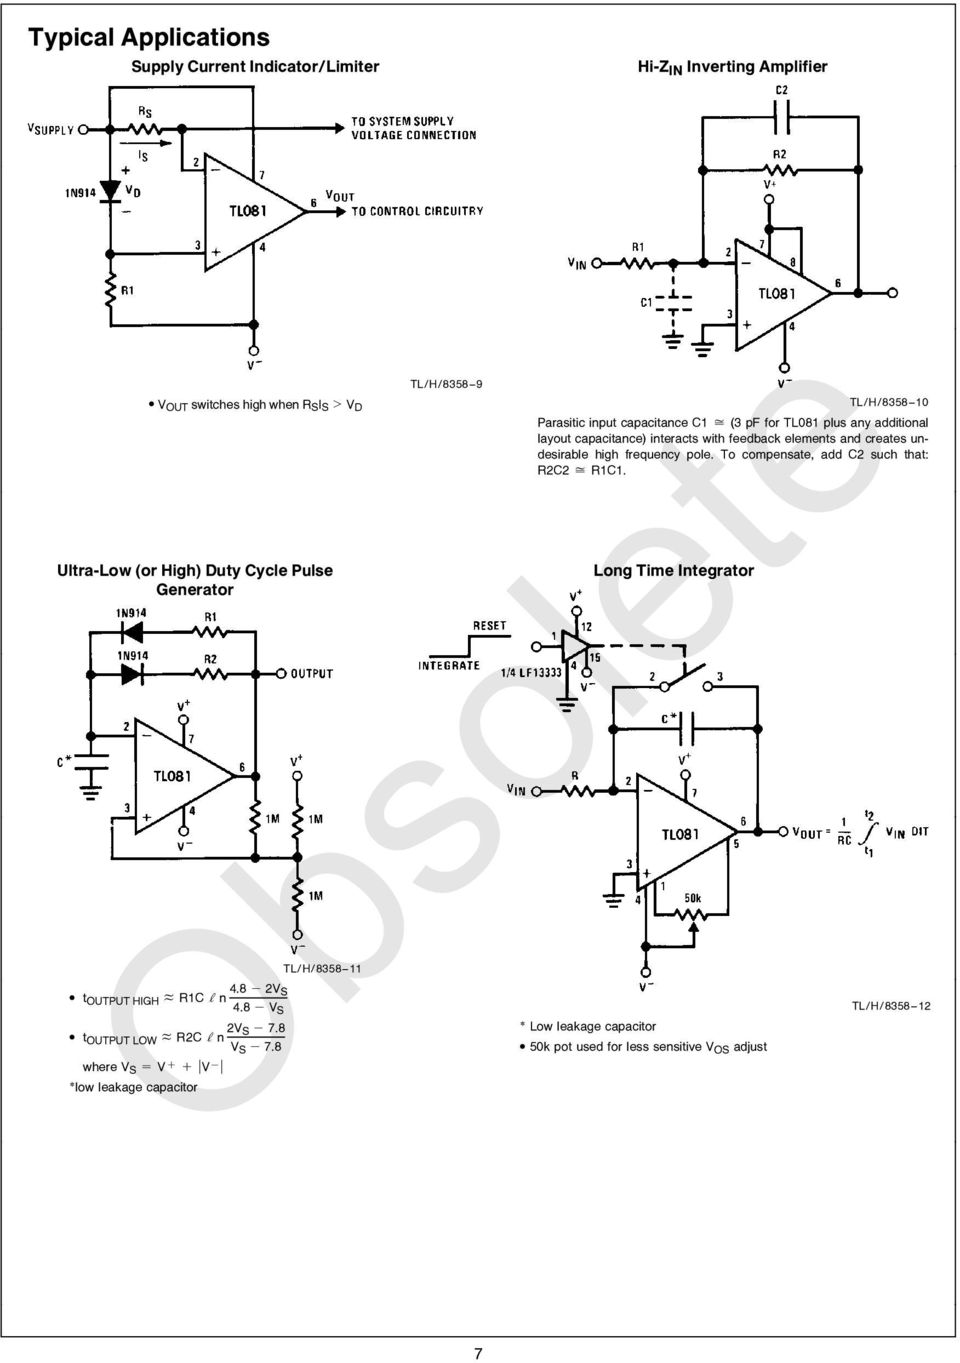 Tl081 Wide Bandwidth Jfet Input Operational Amplifier Pdf Current Circuit Diagram Made Up Of Lf356 And Others Power 8358 9 Tl H 10 Parasitic Capacitance C1 J 3 Pf For